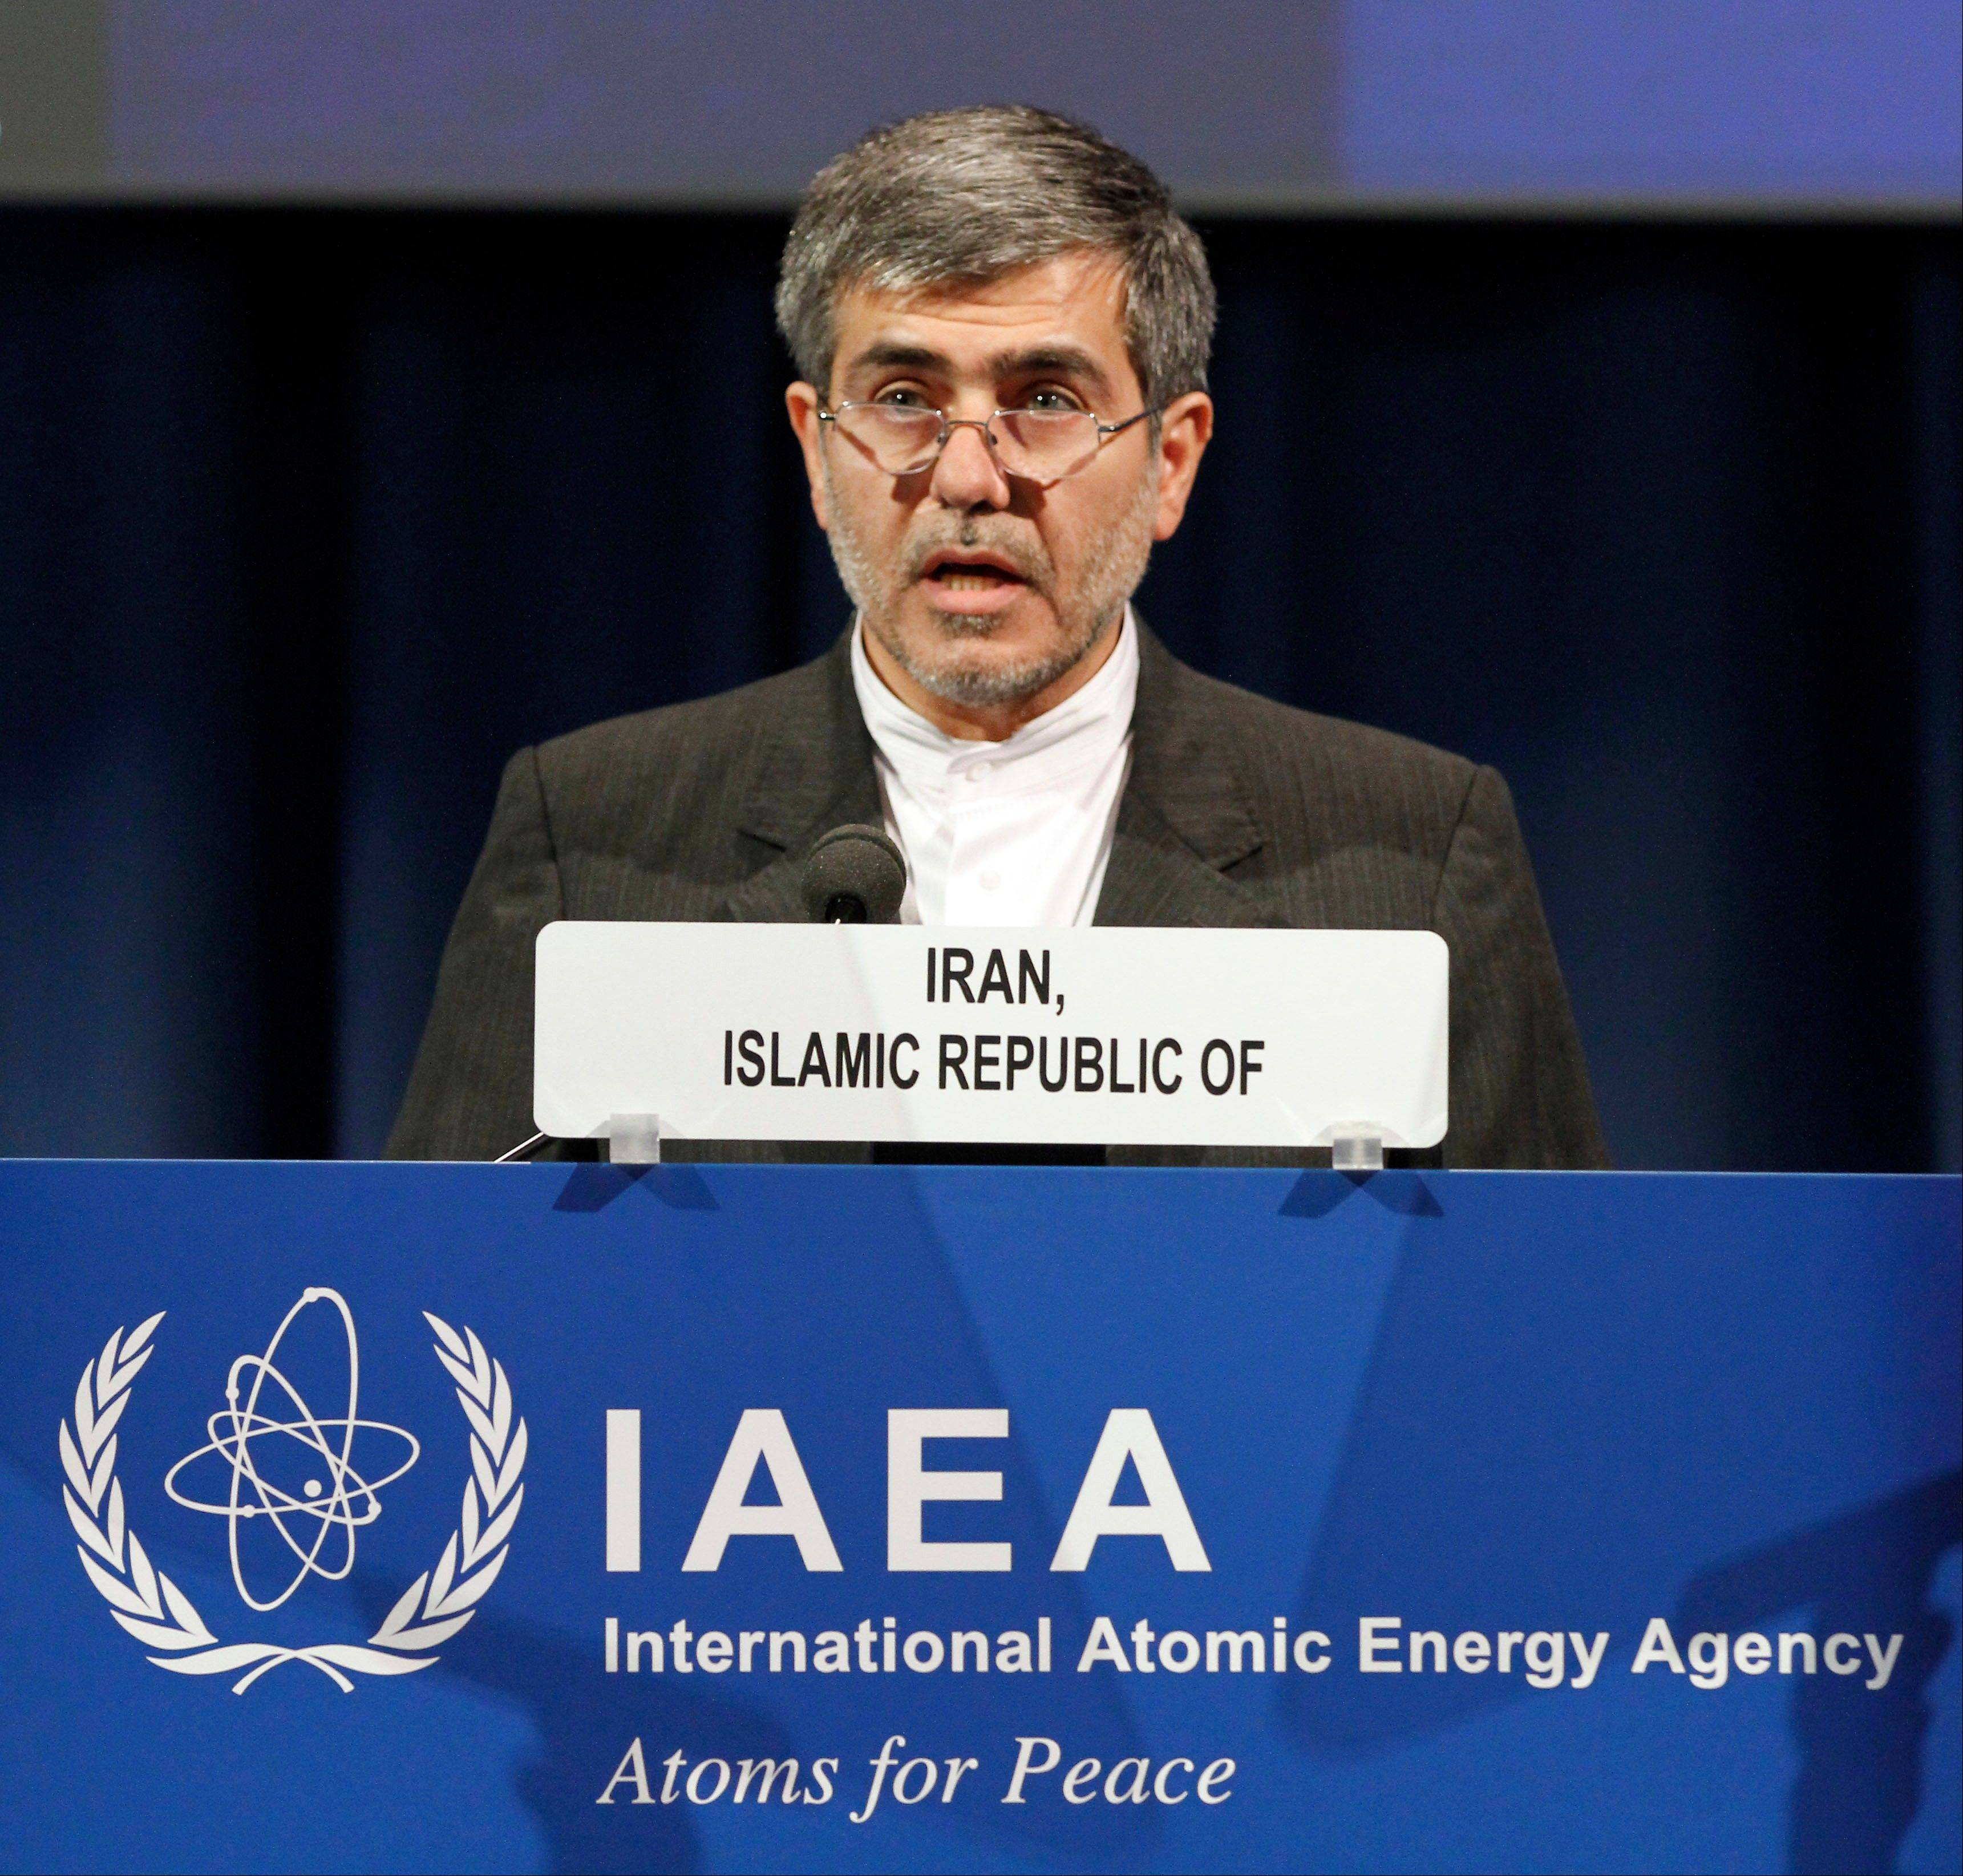 Fereidoun Abbasi Davani, Iran's Vice President and Head of Atomic Energy Organization, delivers a speech at the general conference of the International Atomic Energy Agency, IAEA, at the International Center, in Vienna, Austria, Monday.